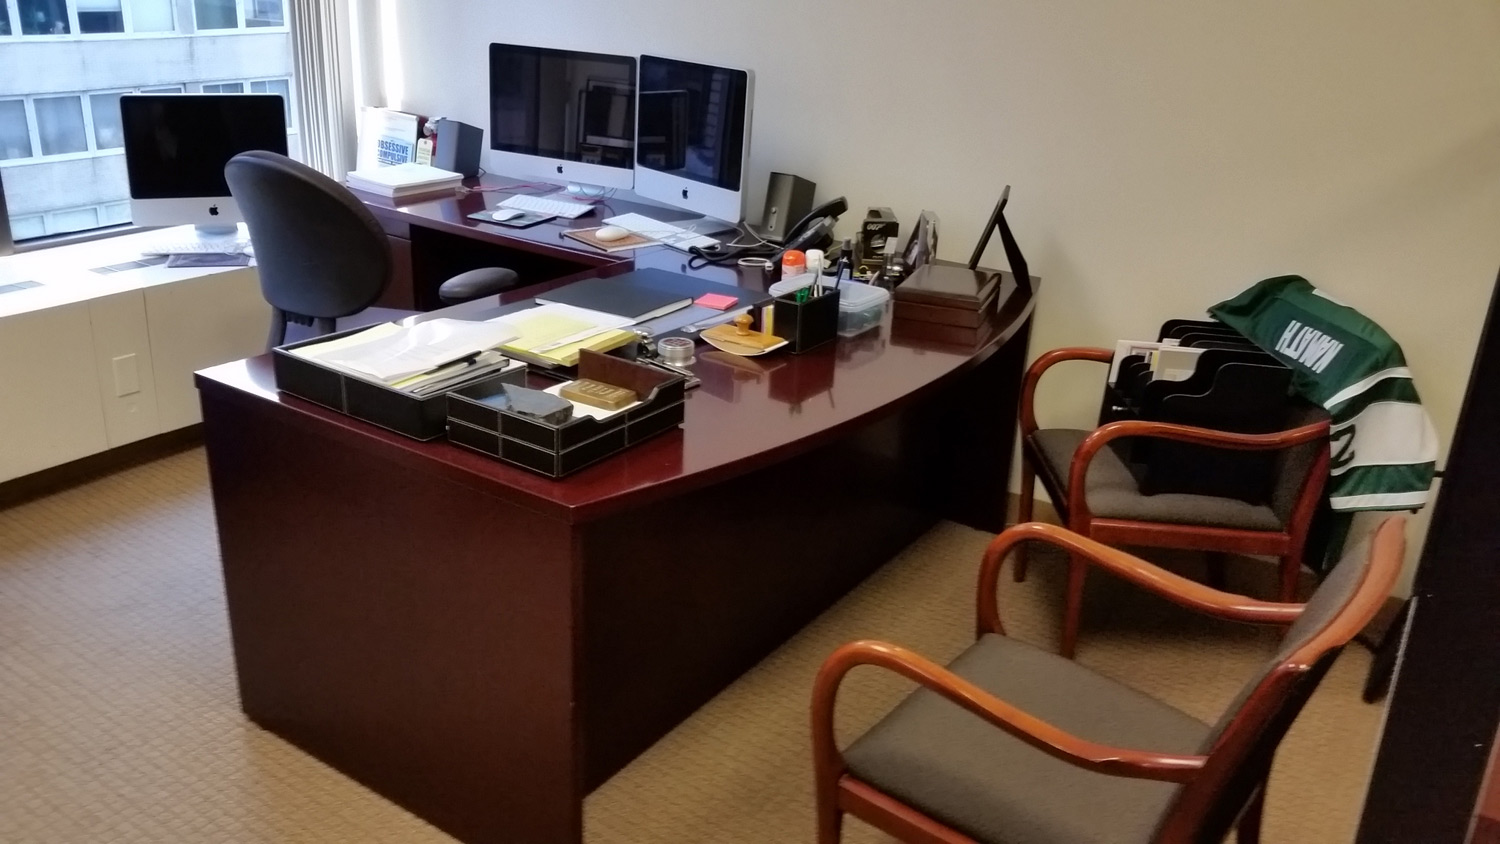 ... Furniture Bradenton moreover Office Furniture And Workspace. on office